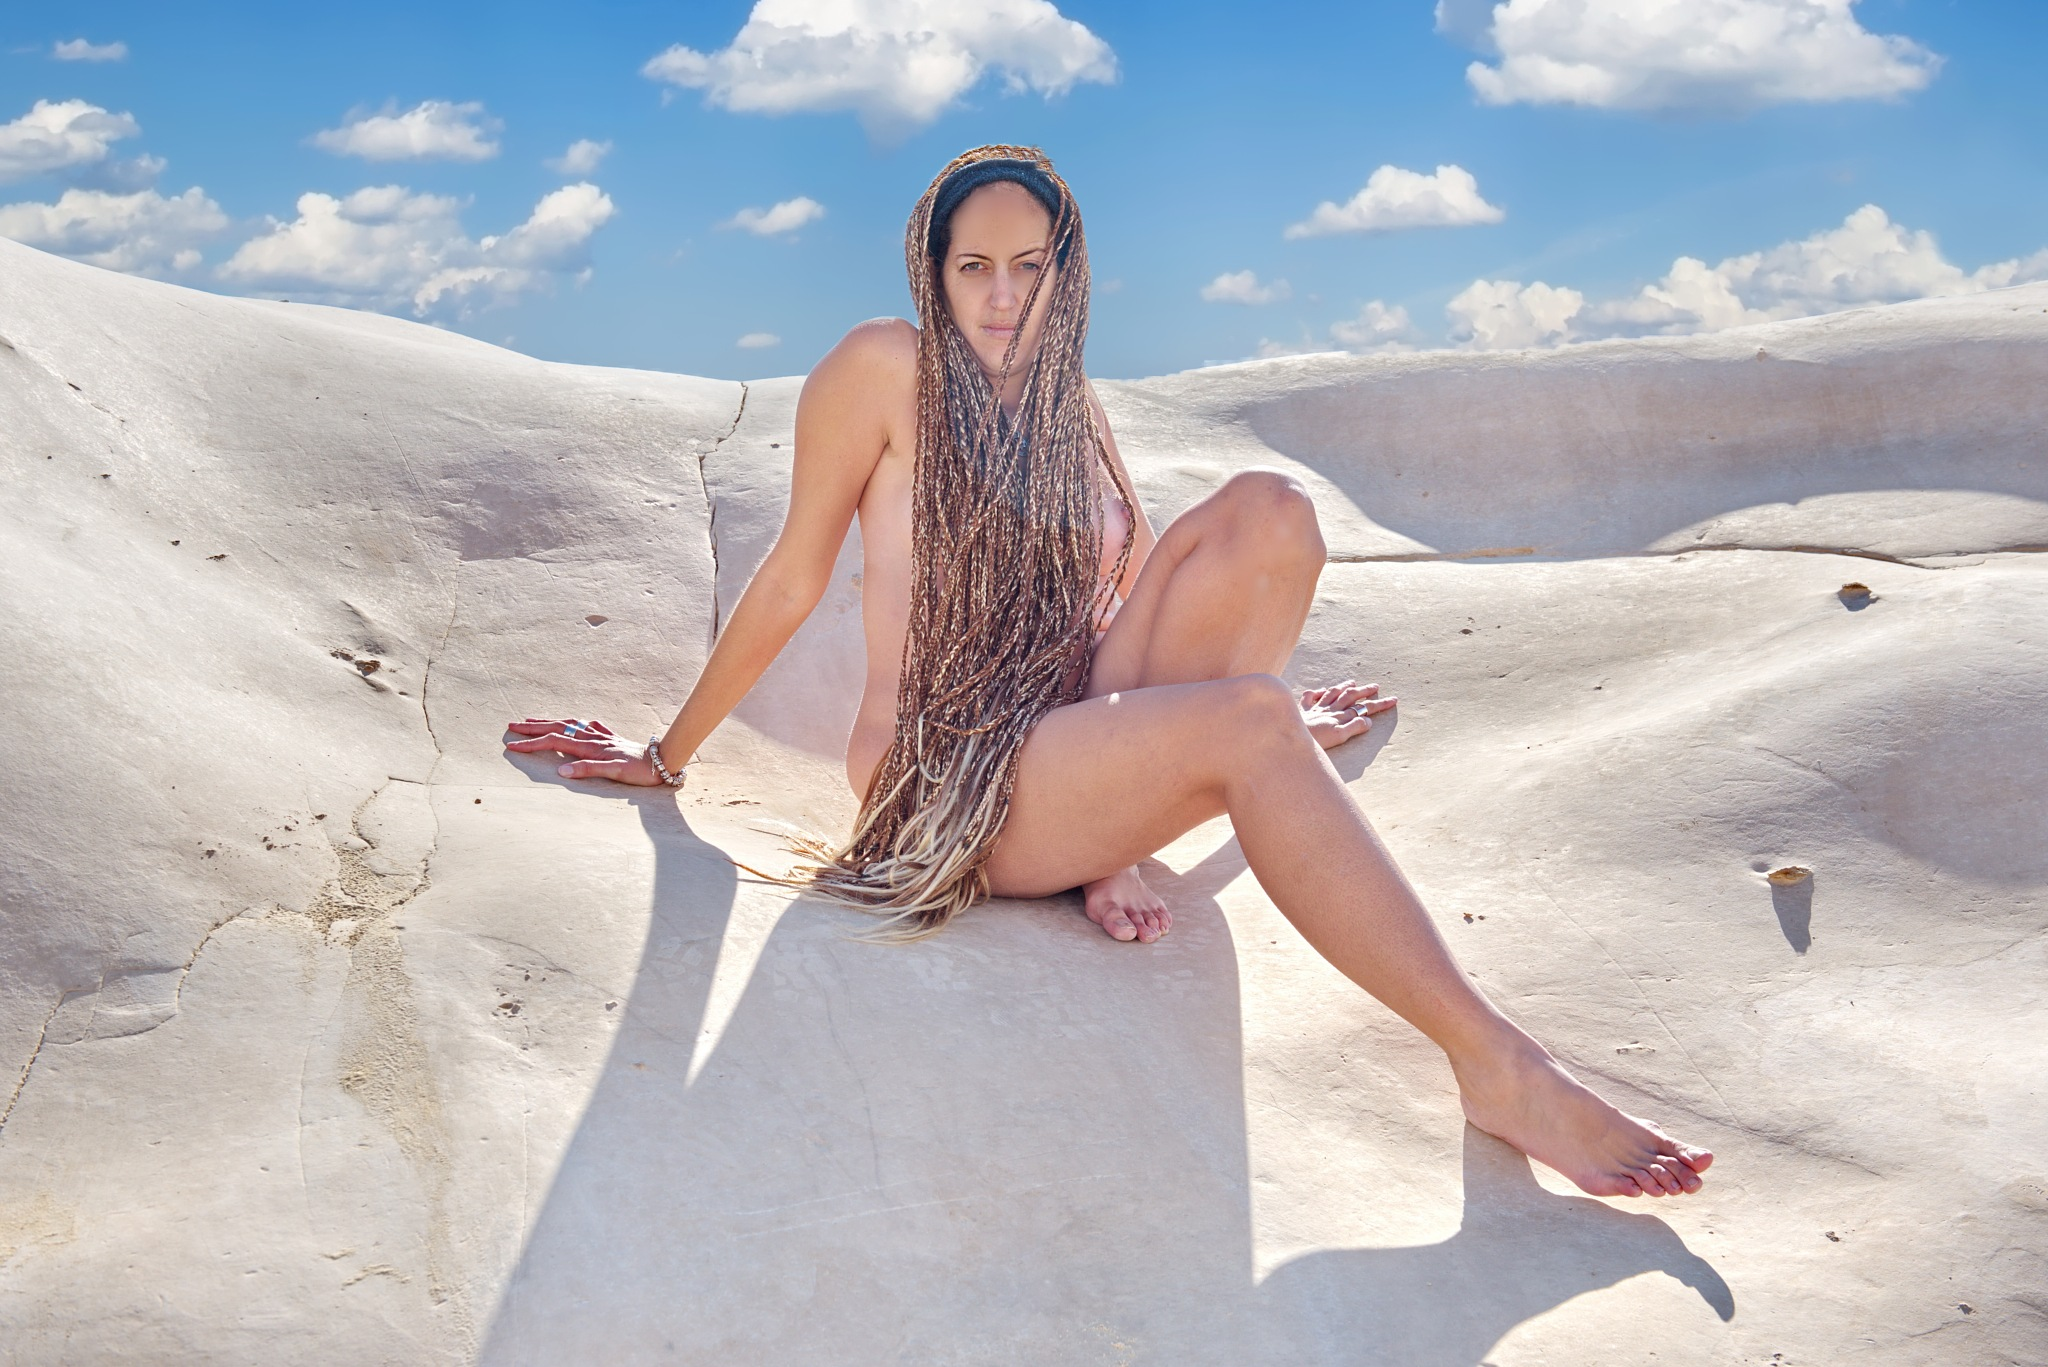 A woman's curves and curves of rock by Moti fine art nude photography